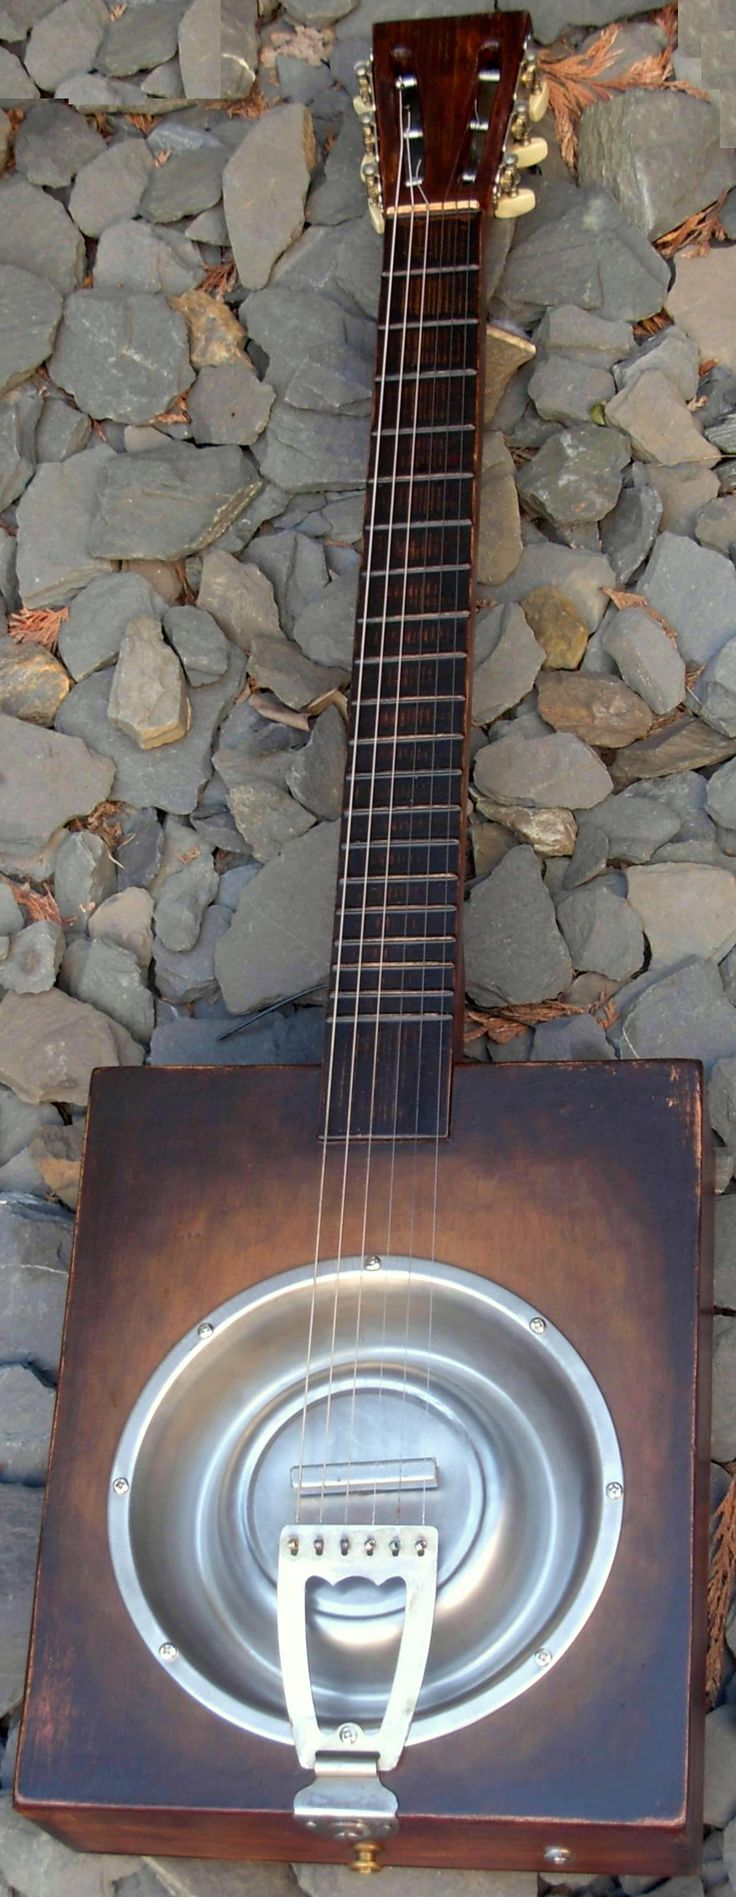 Dog dish resonator wine box Guitar --- https://www.pinterest.com/lardyfatboy/